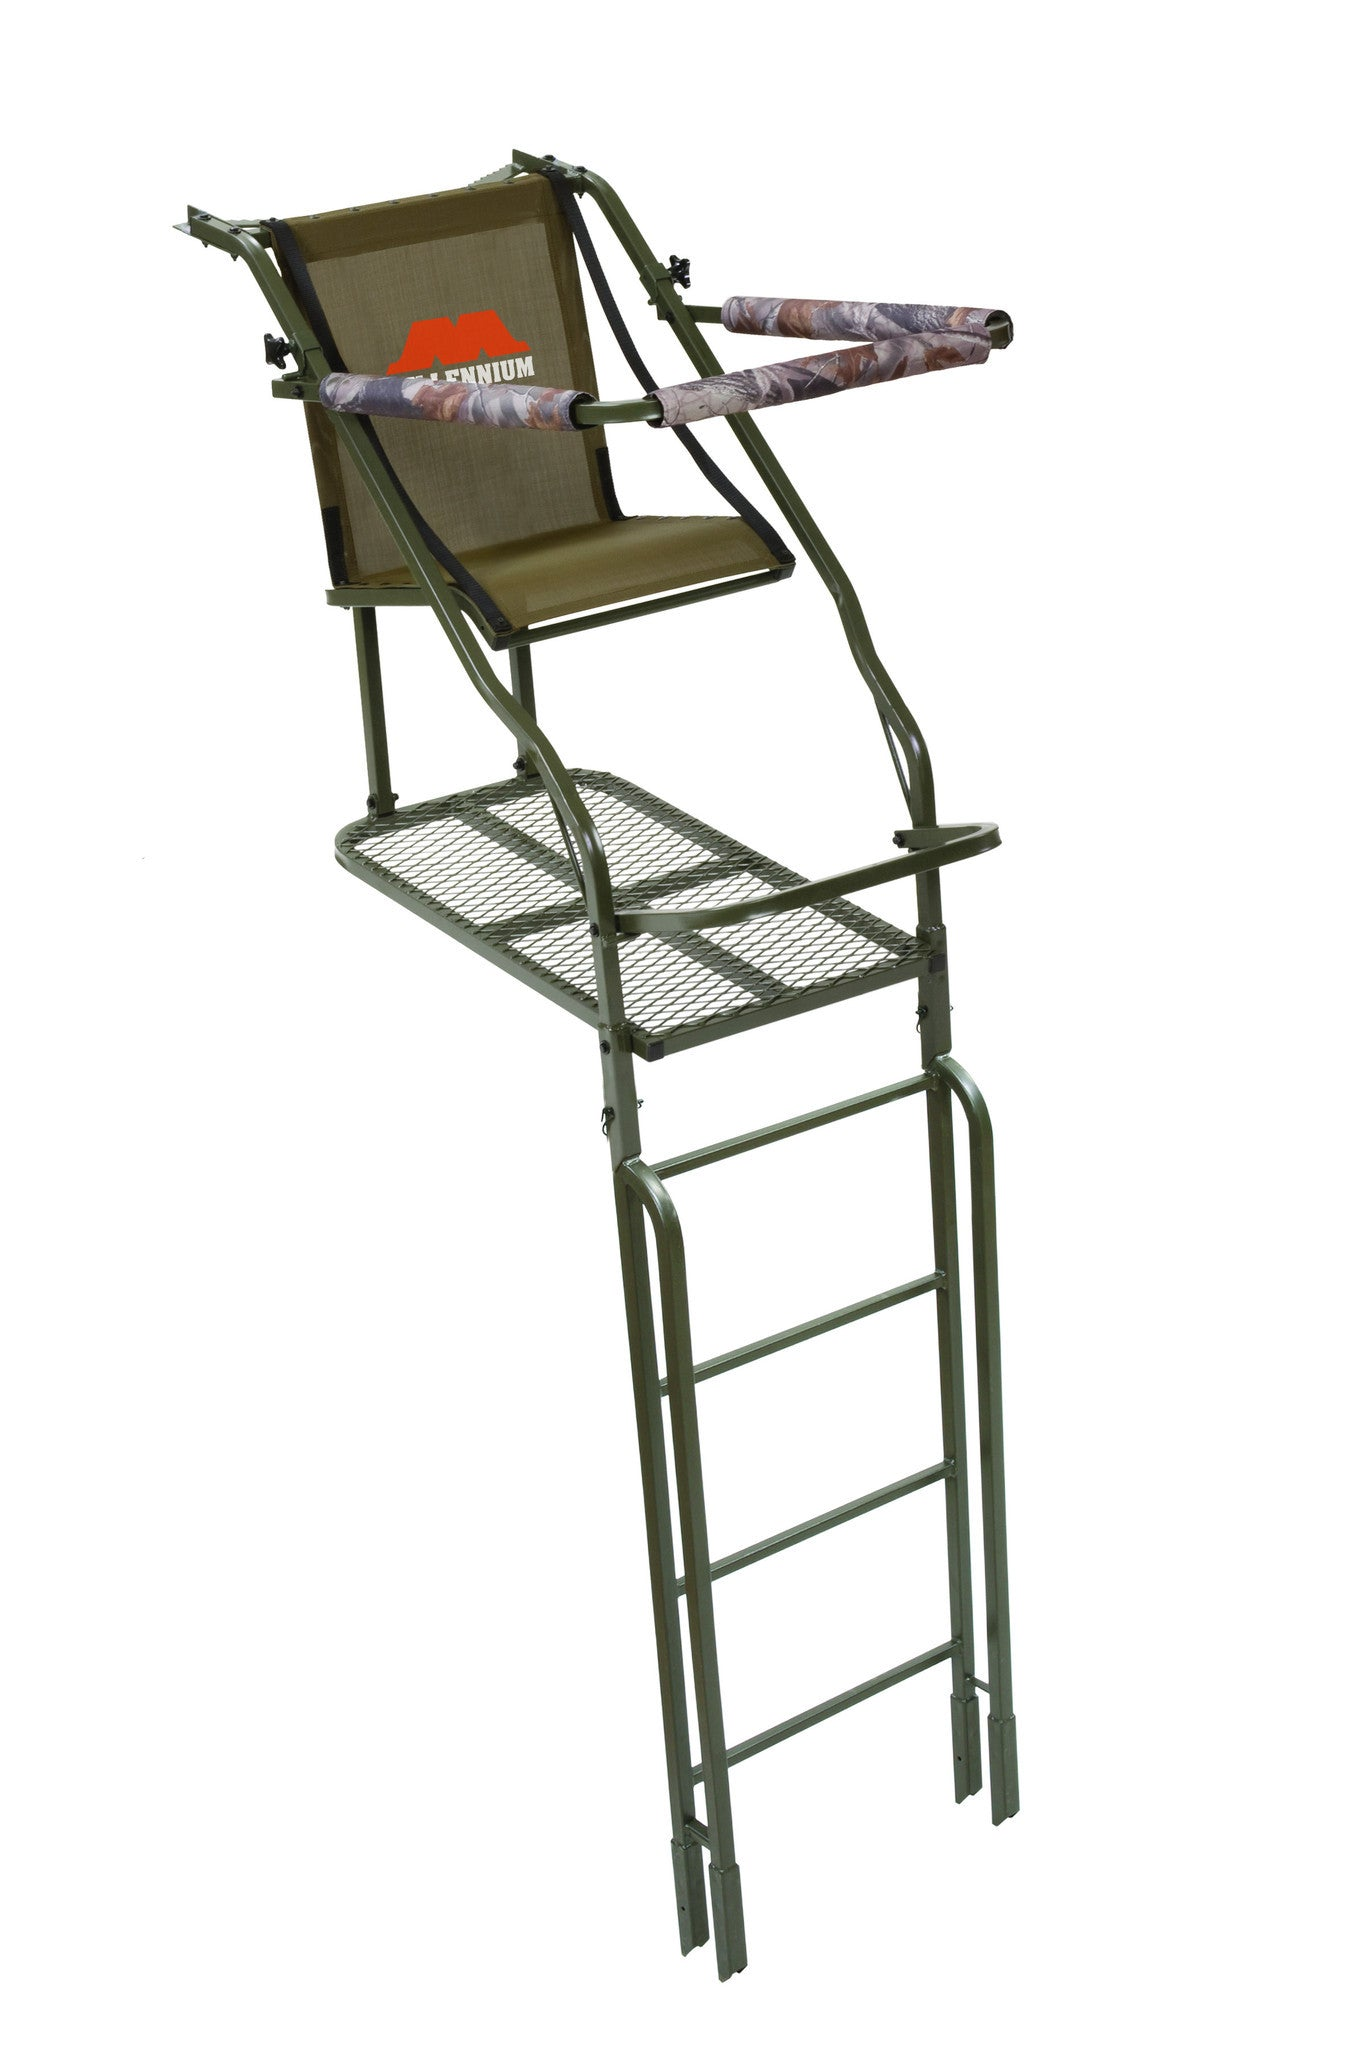 Millennium L110 21 FT Single ladder tree stand – Hunter Tree